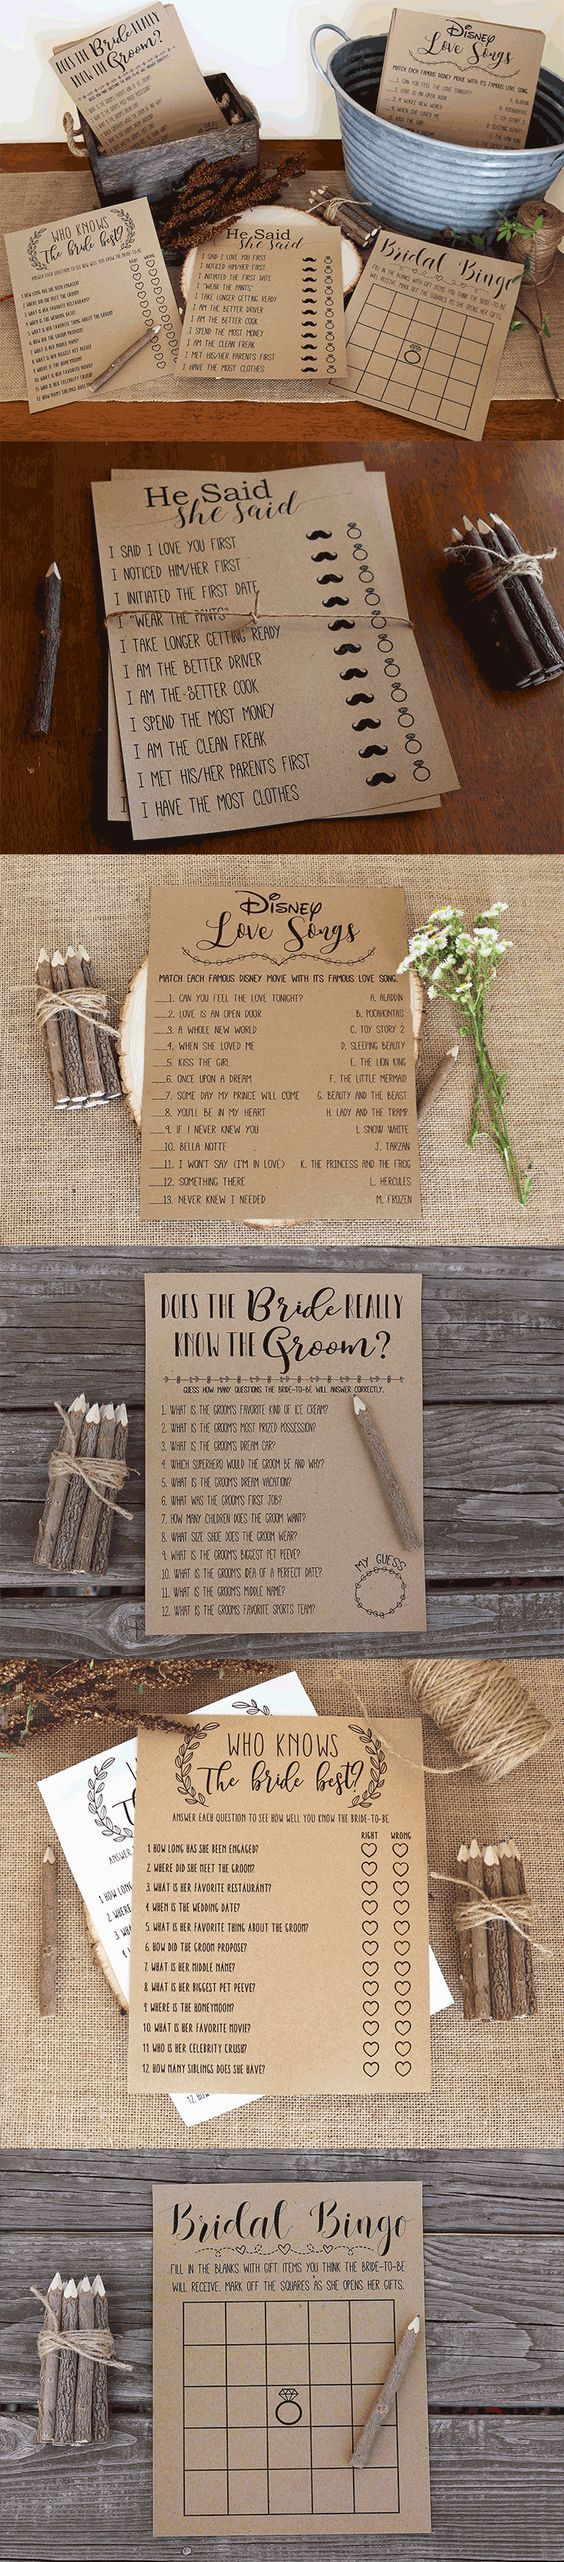 free printable bridal shower games how well do you know the bride%0A I like the   who knows the bride   game